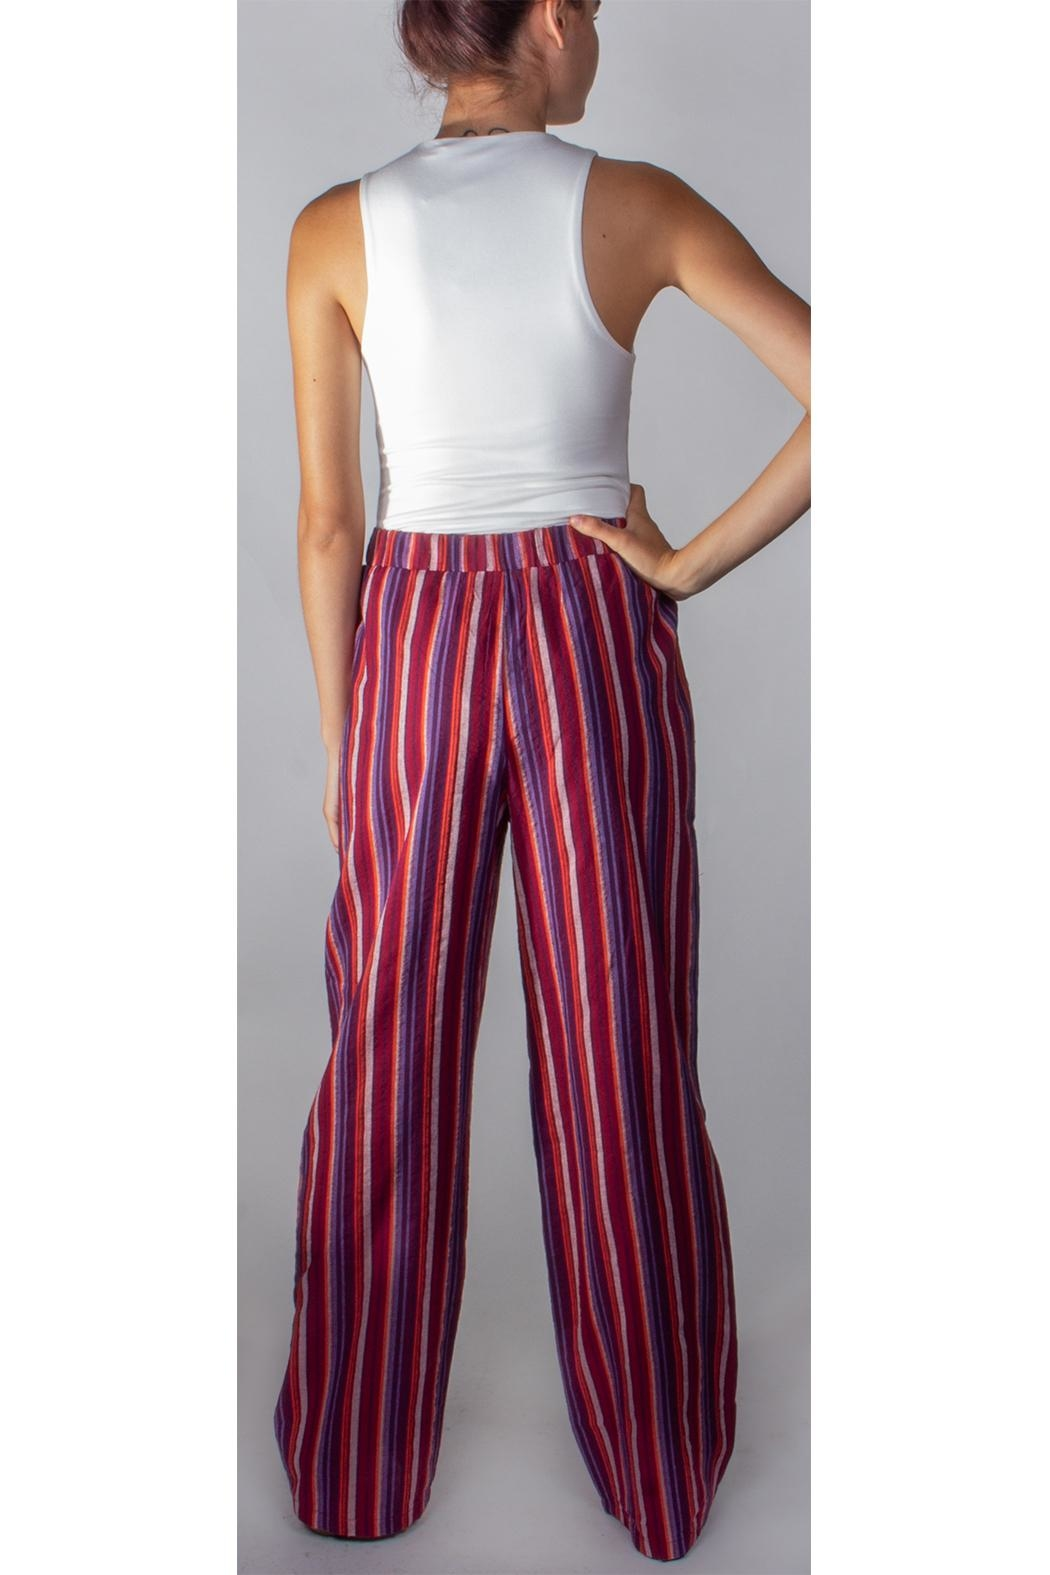 Miss Love Paperbag Striped Pants - Side Cropped Image